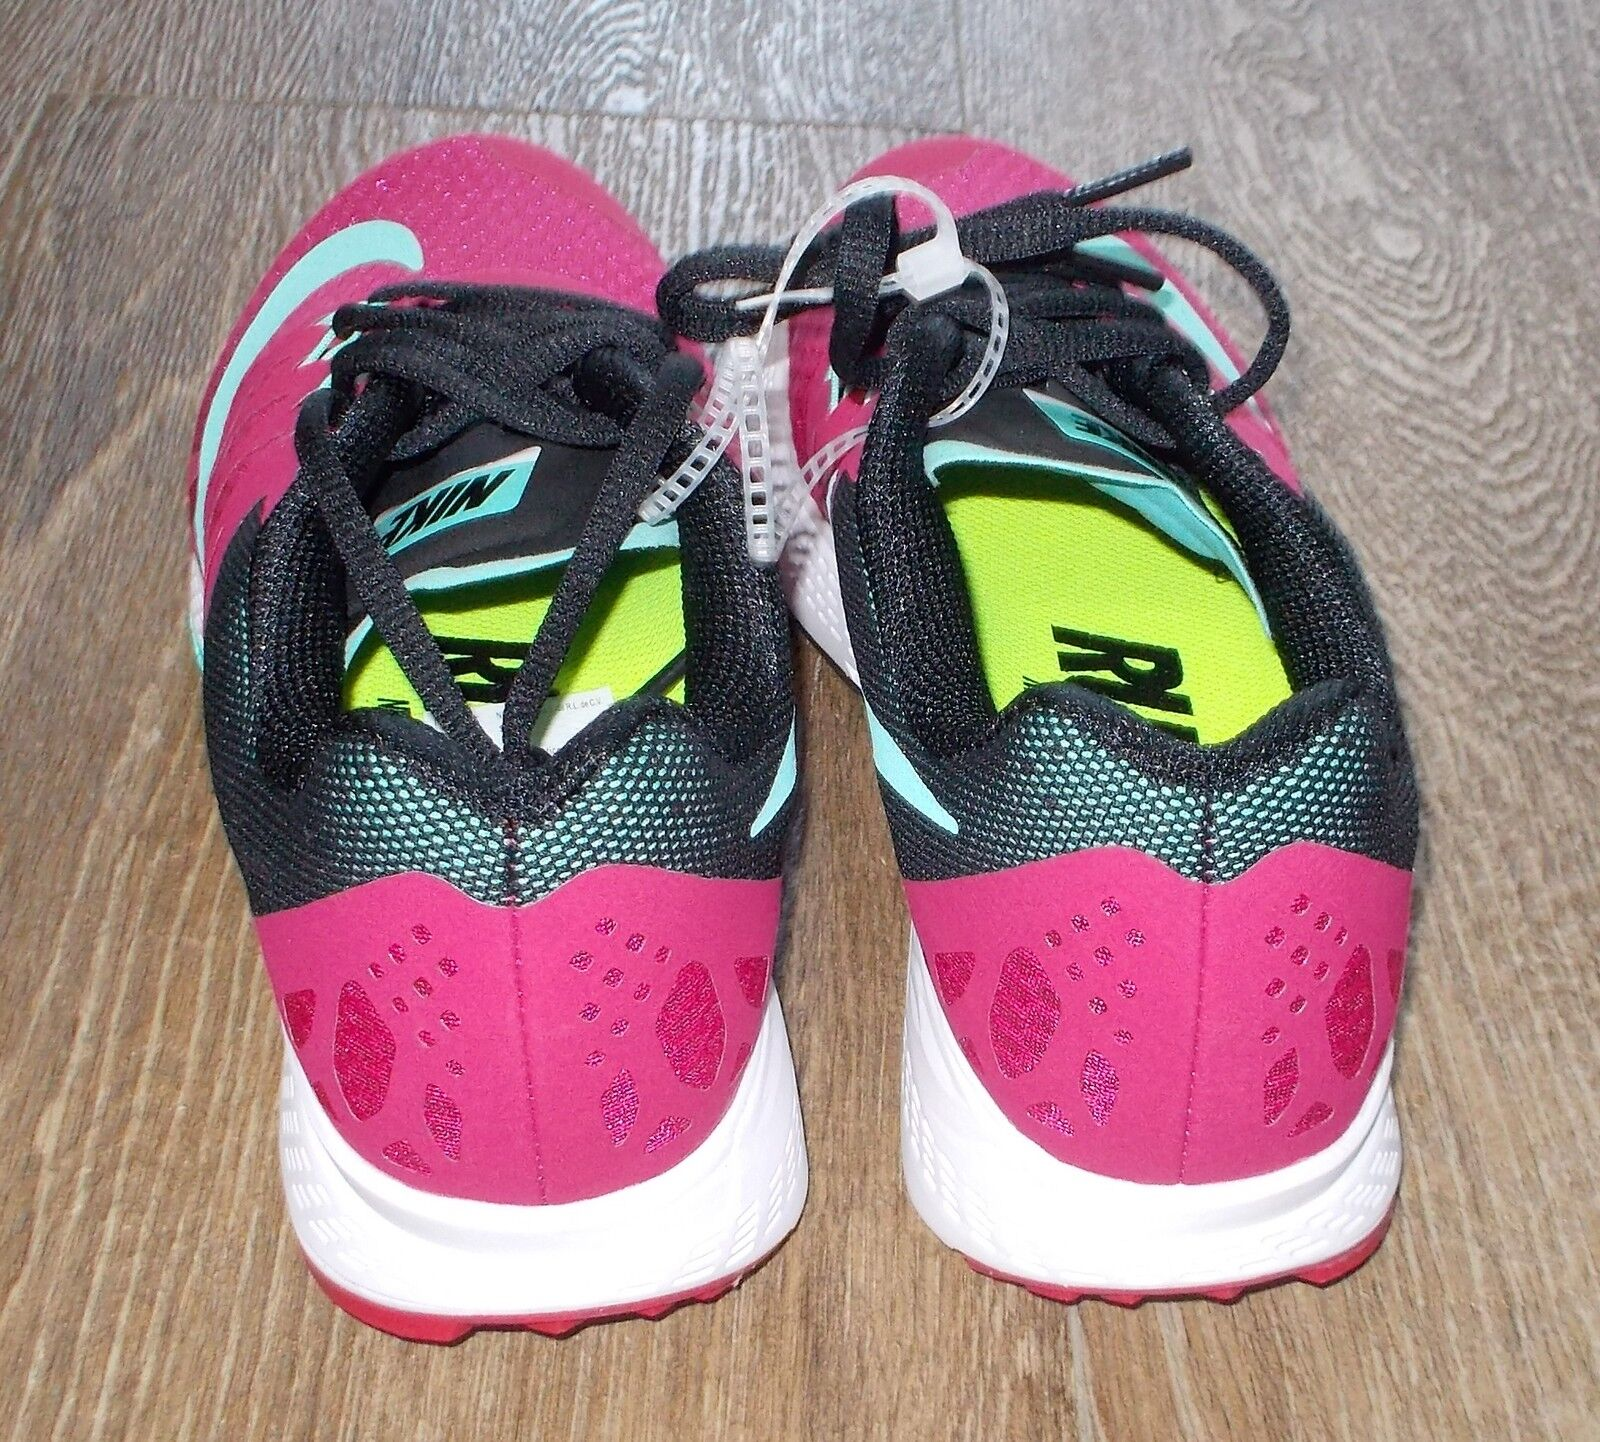 size 40 ff3f7 50075 Bbbe7e Zoom Nike 7 Nouvelles 120 Air Femmes lite Limited UqI8CI5wx